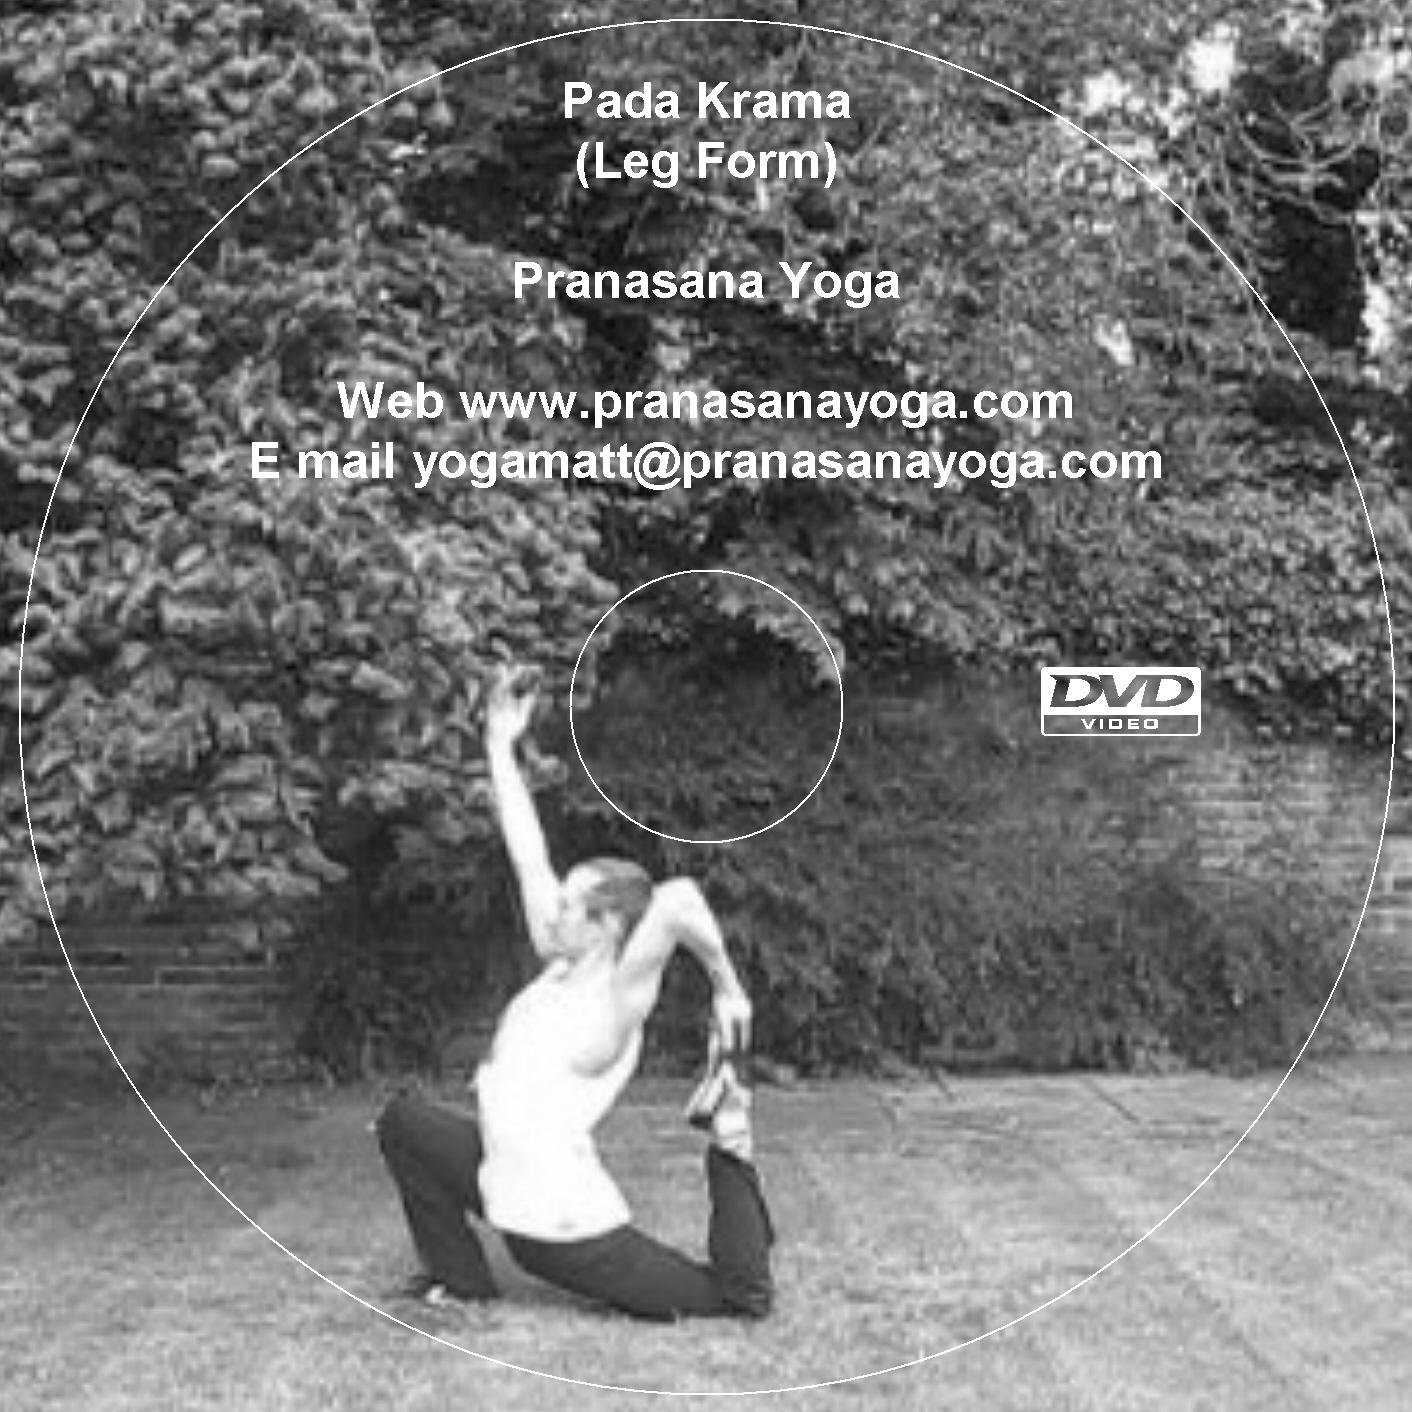 Pada Krama - Standing Yoga Postures DVD Sequence for ...